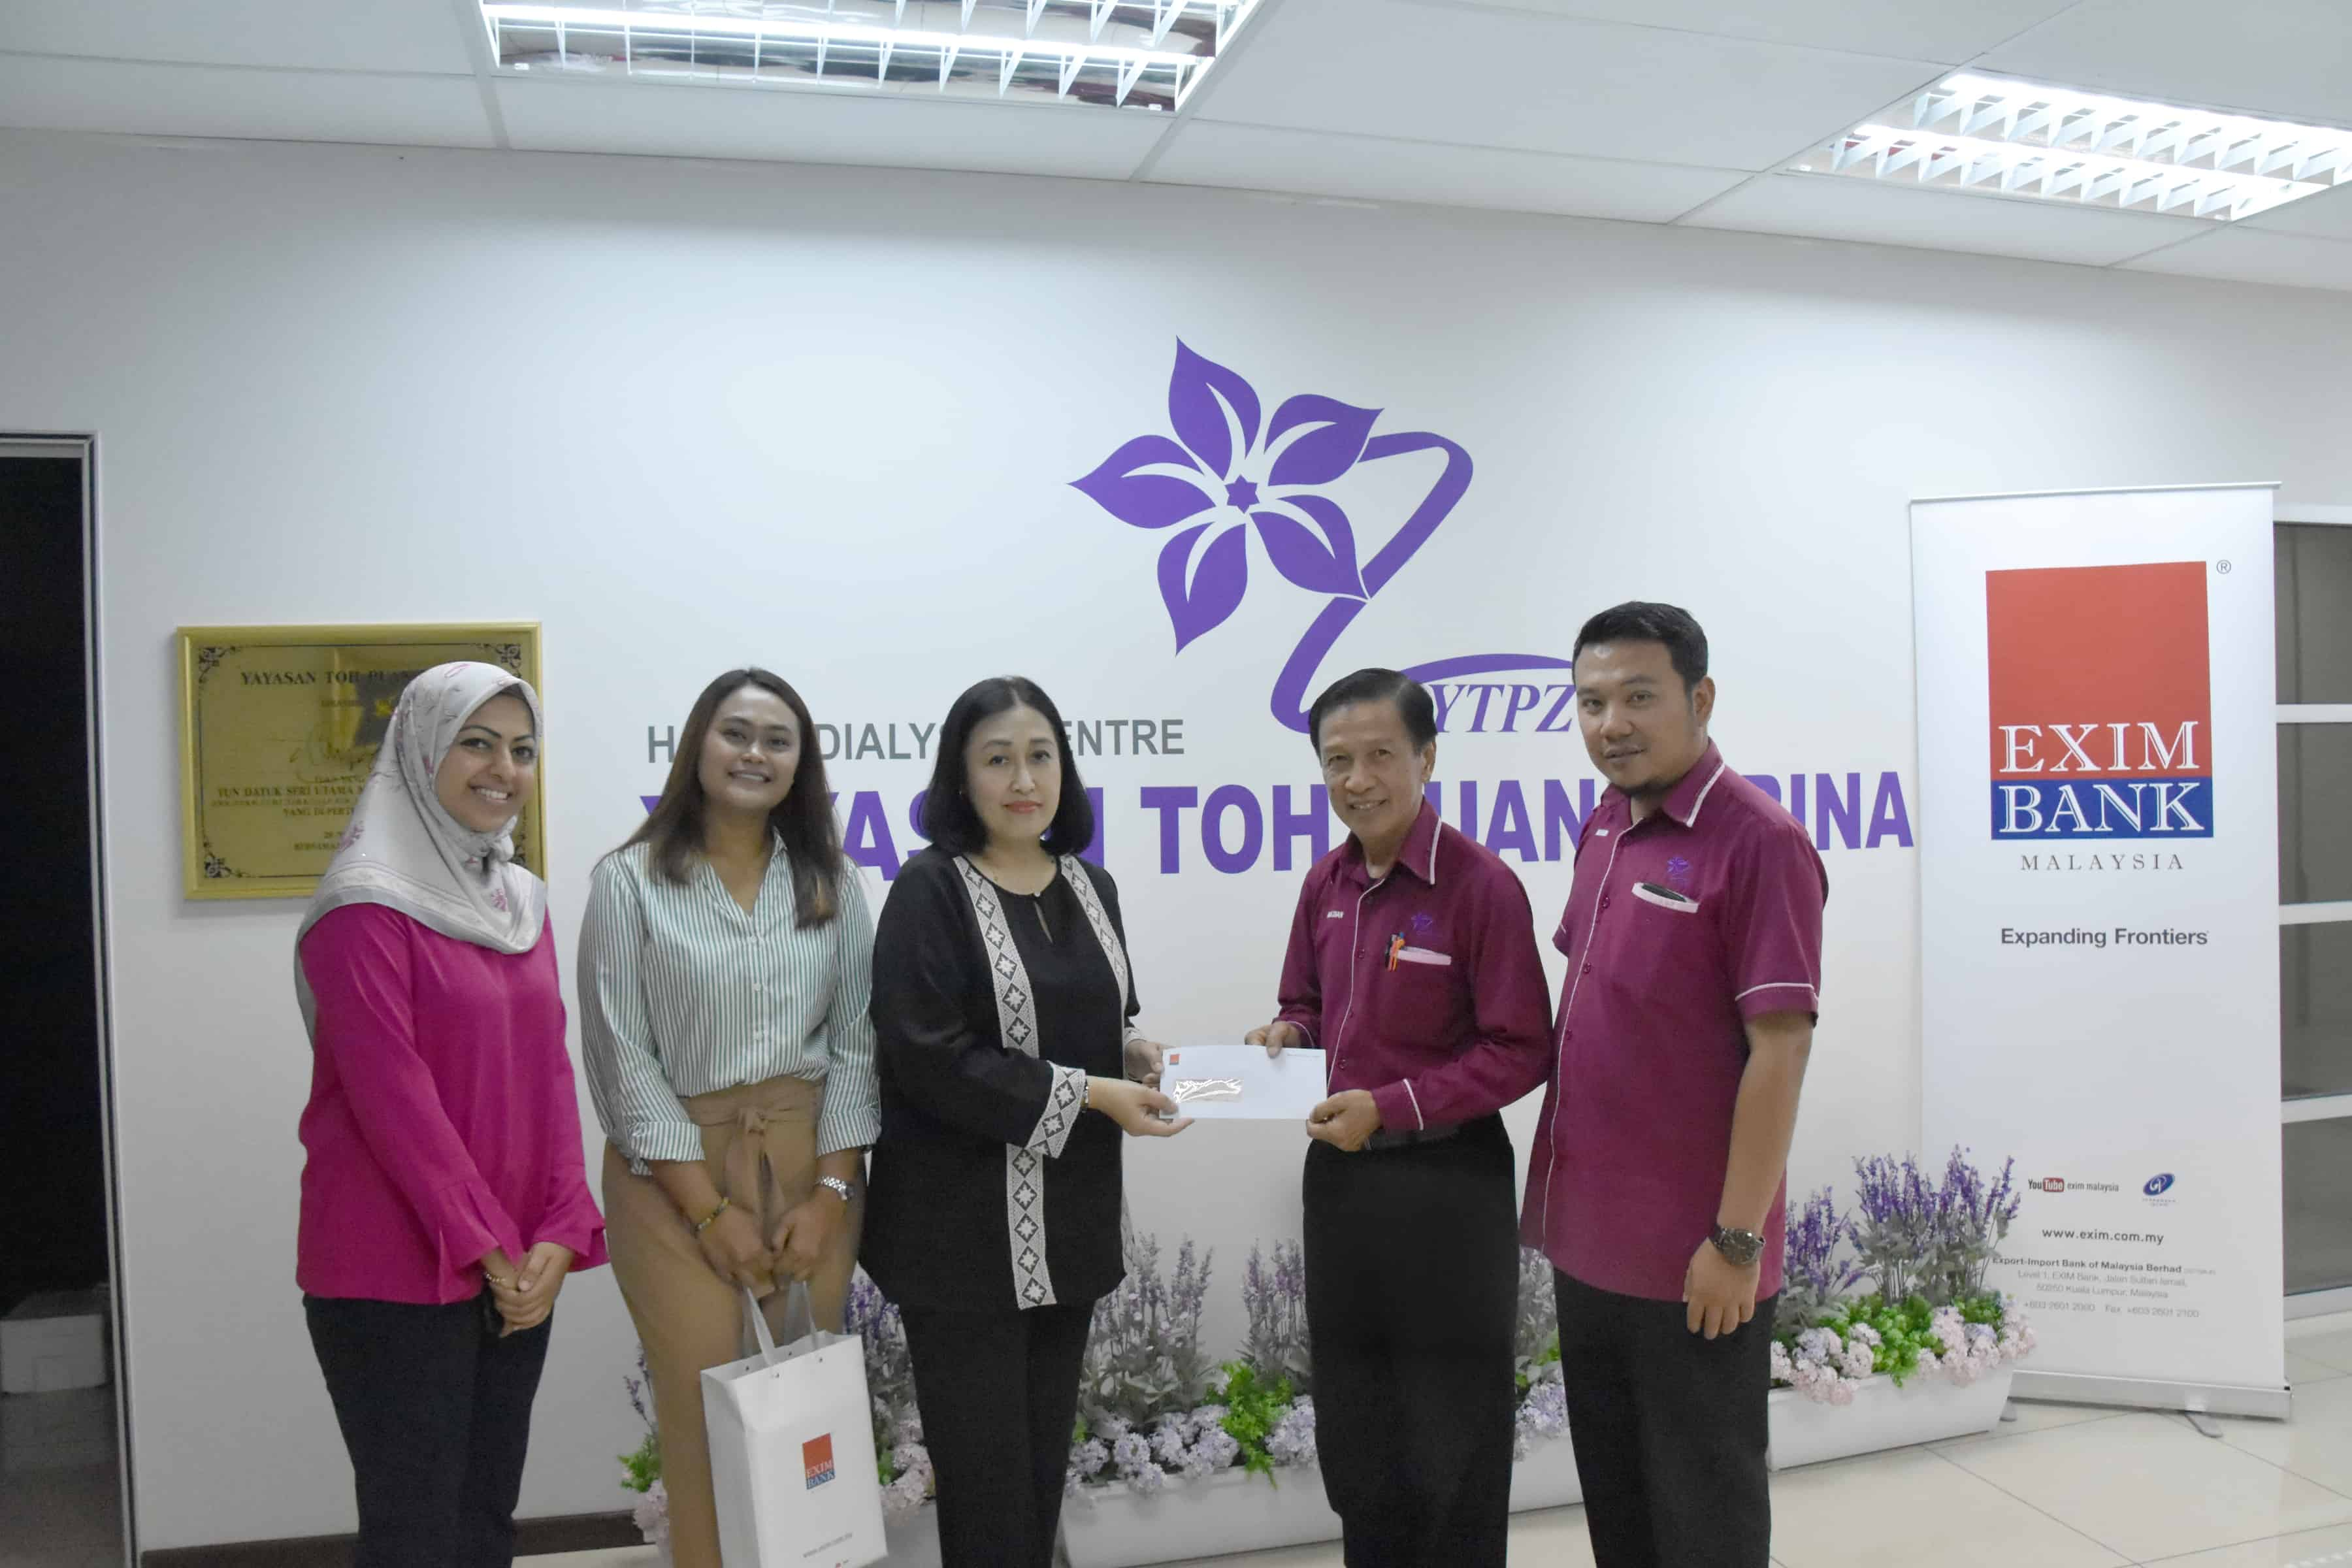 EXIM Bank Gives Back To The Community